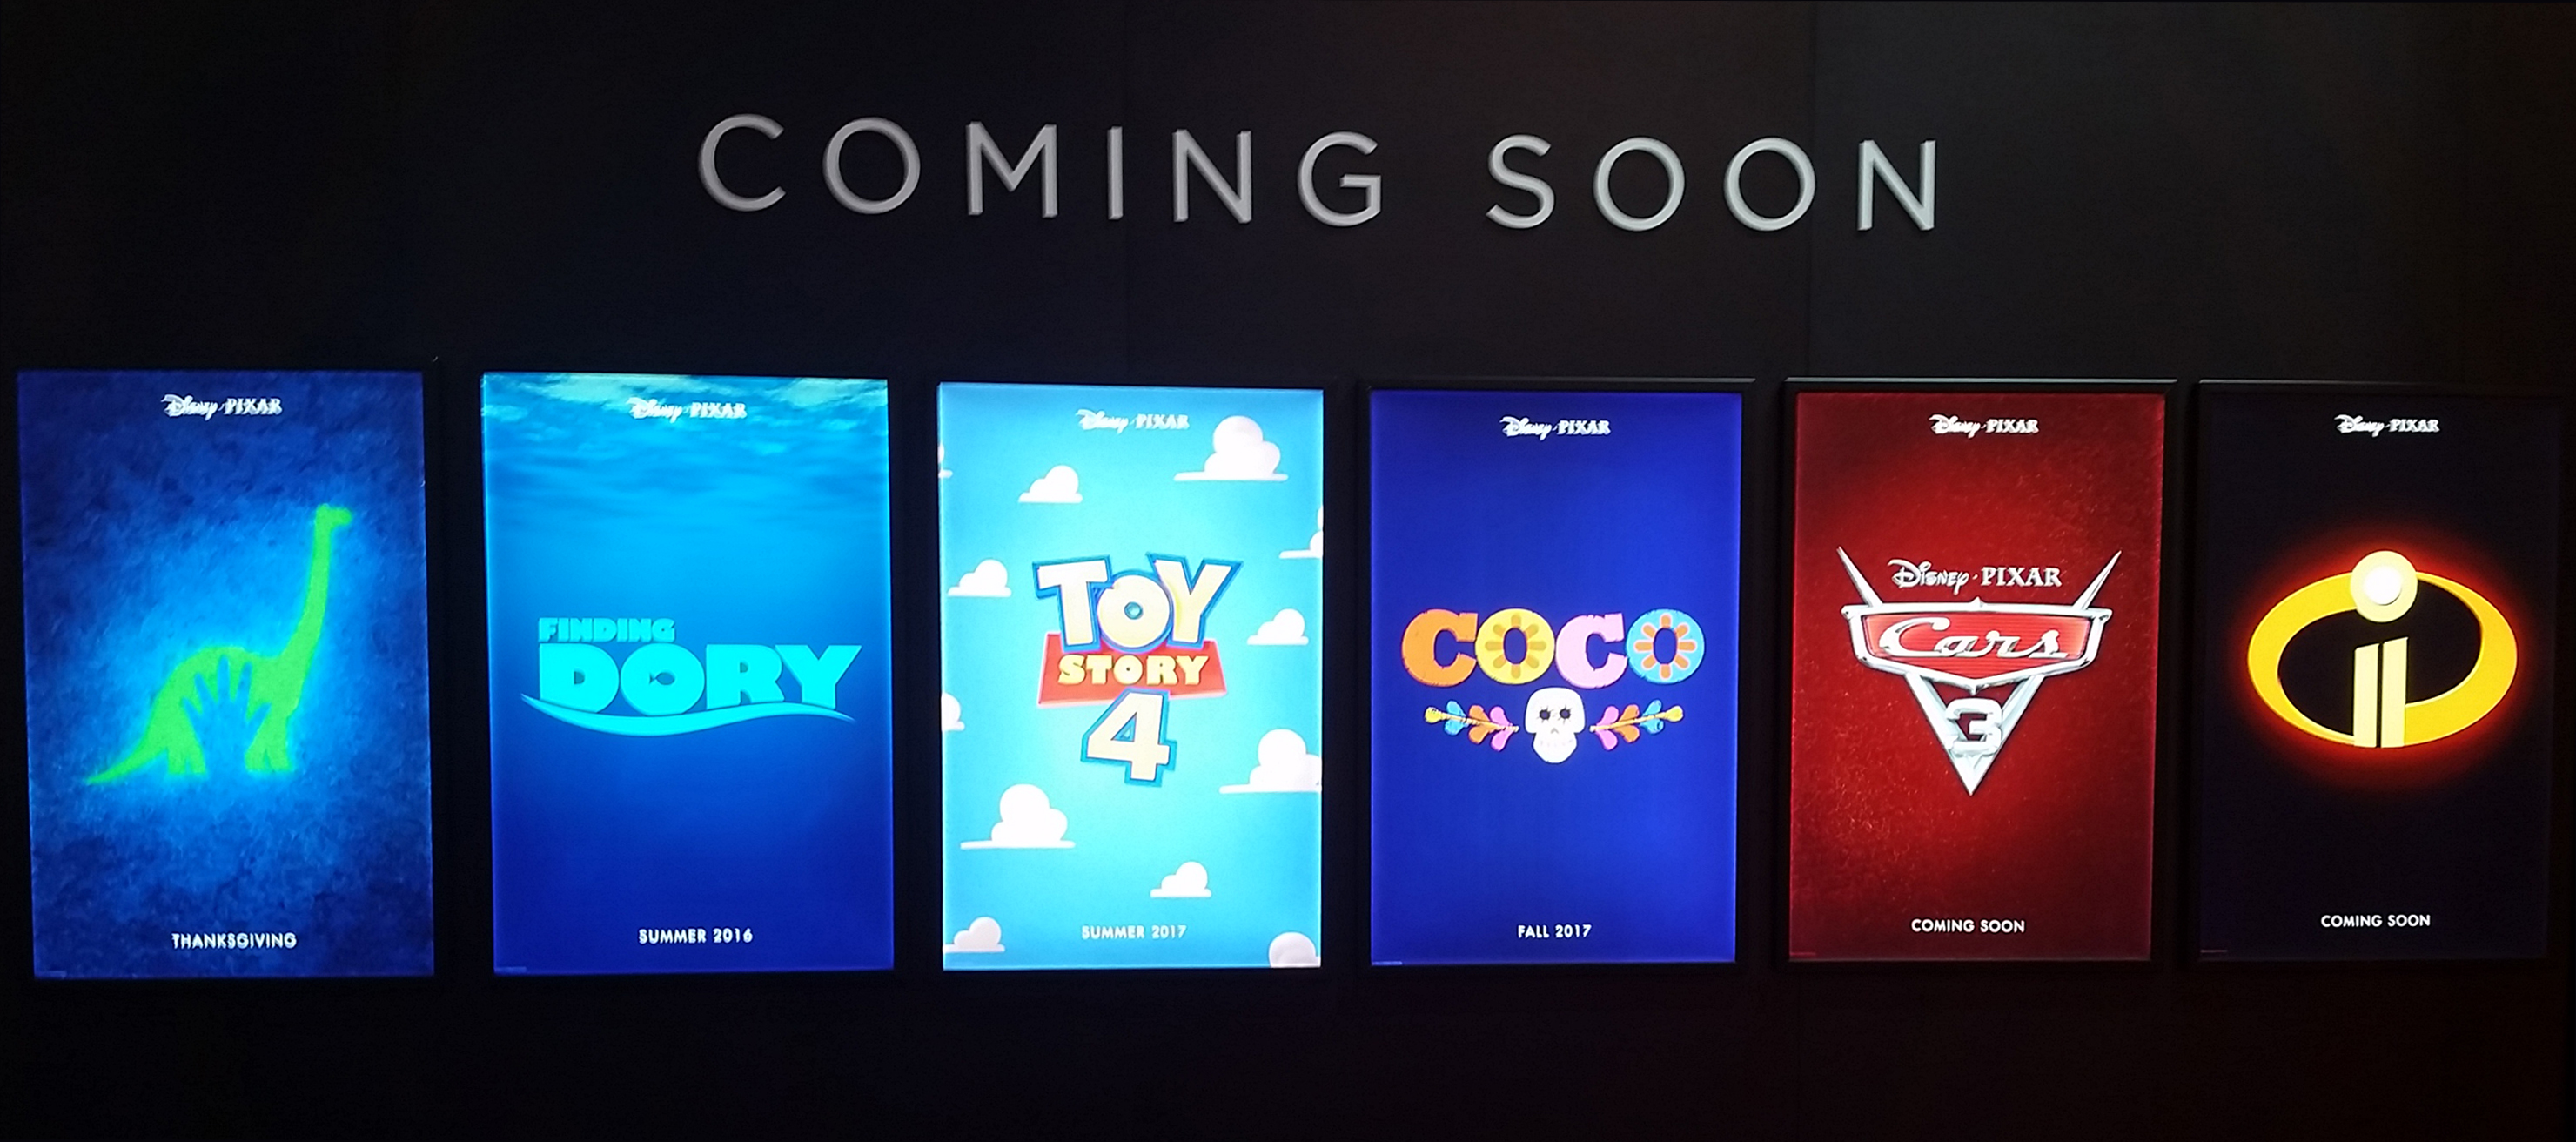 Upcoming 2017 Movie Posters: D23: The Full Poster Lineup For Pixar's Upcoming Slate